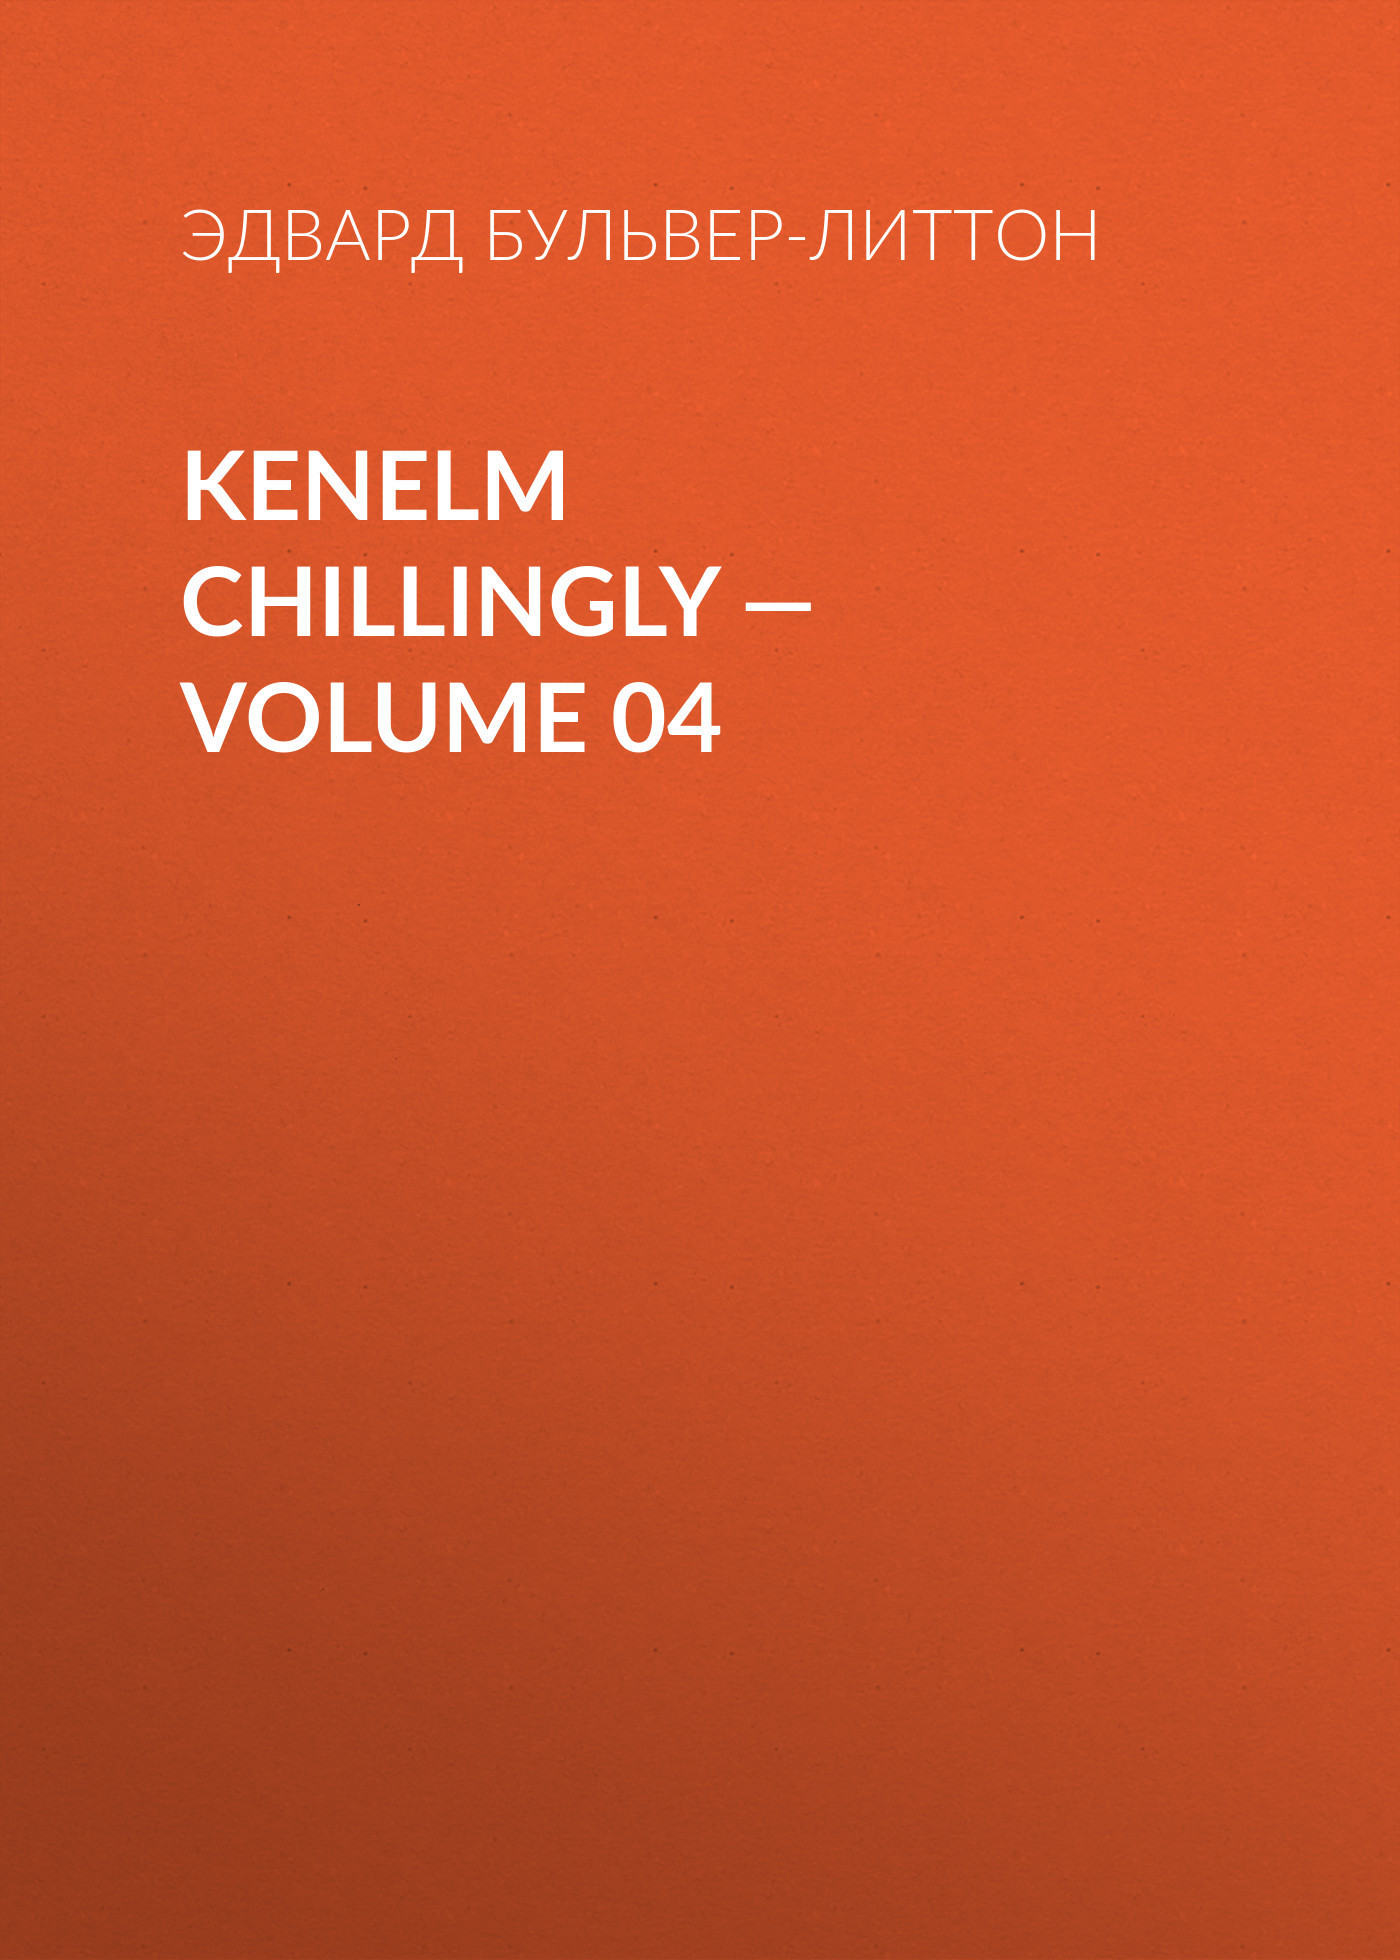 Эдвард Бульвер-Литтон Kenelm Chillingly — Volume 04